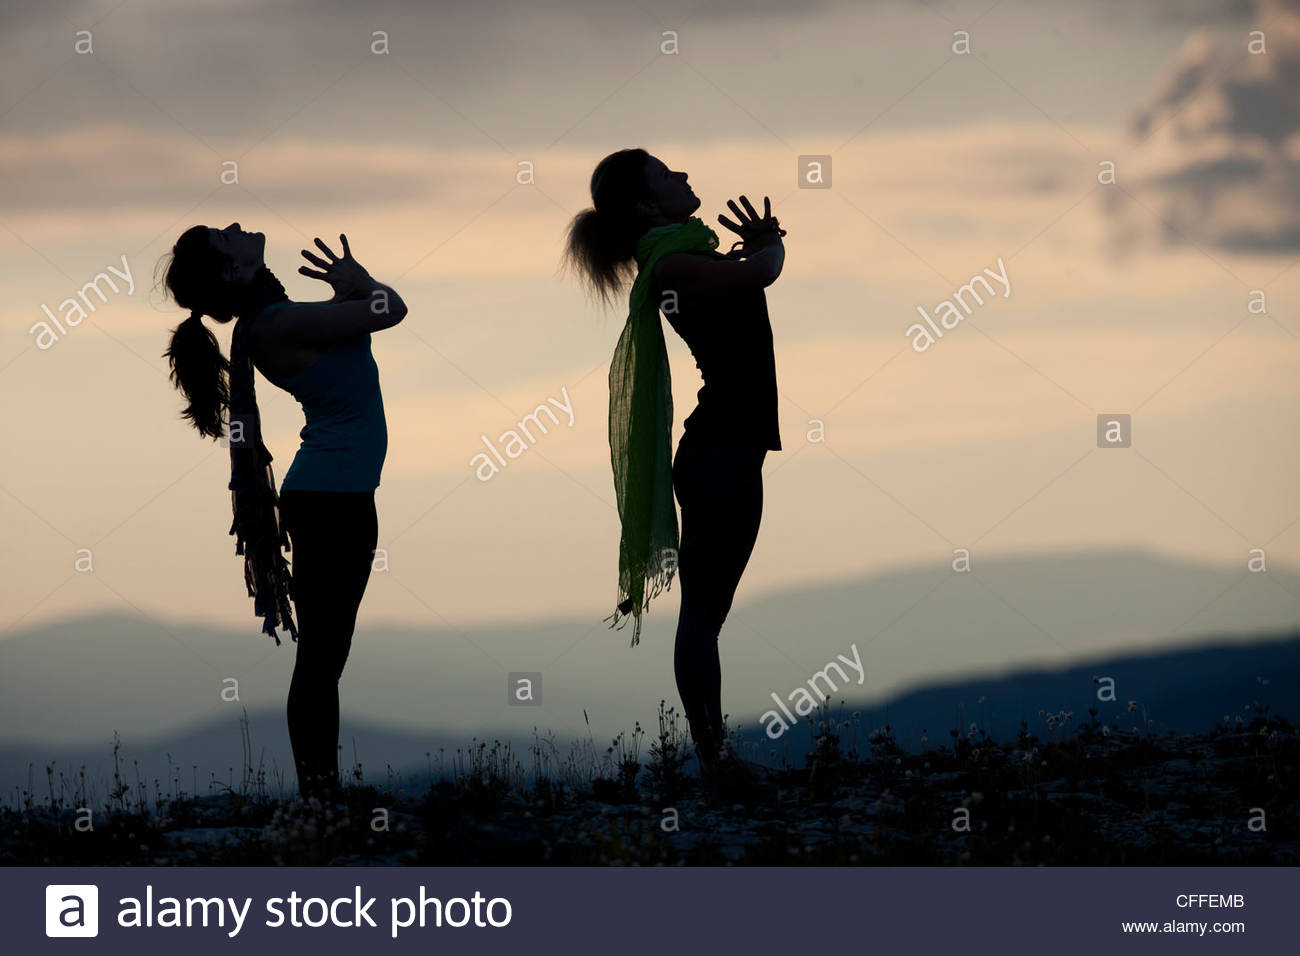 Silhouette of two people practicing yoga - Stock Image